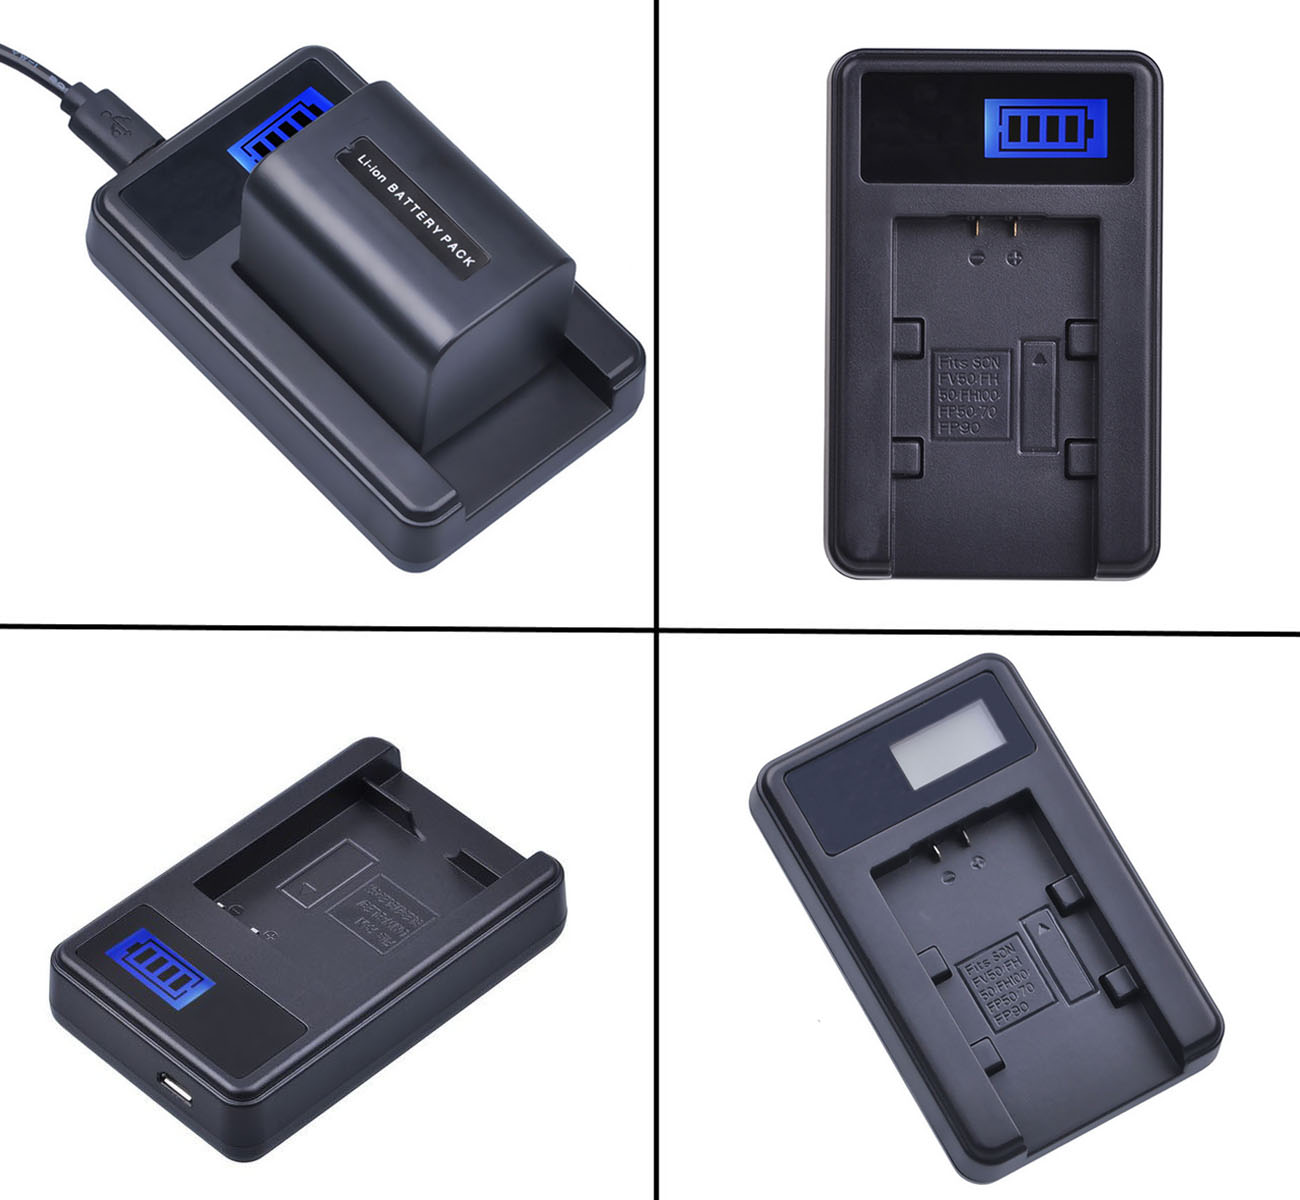 DCR-SX31 LCD Quick Battery Charger for Sony DCR-SX30 DCR-SX41 DCR-SX40 DCR-SX50 DCR-SX60 Handycam Camcorder